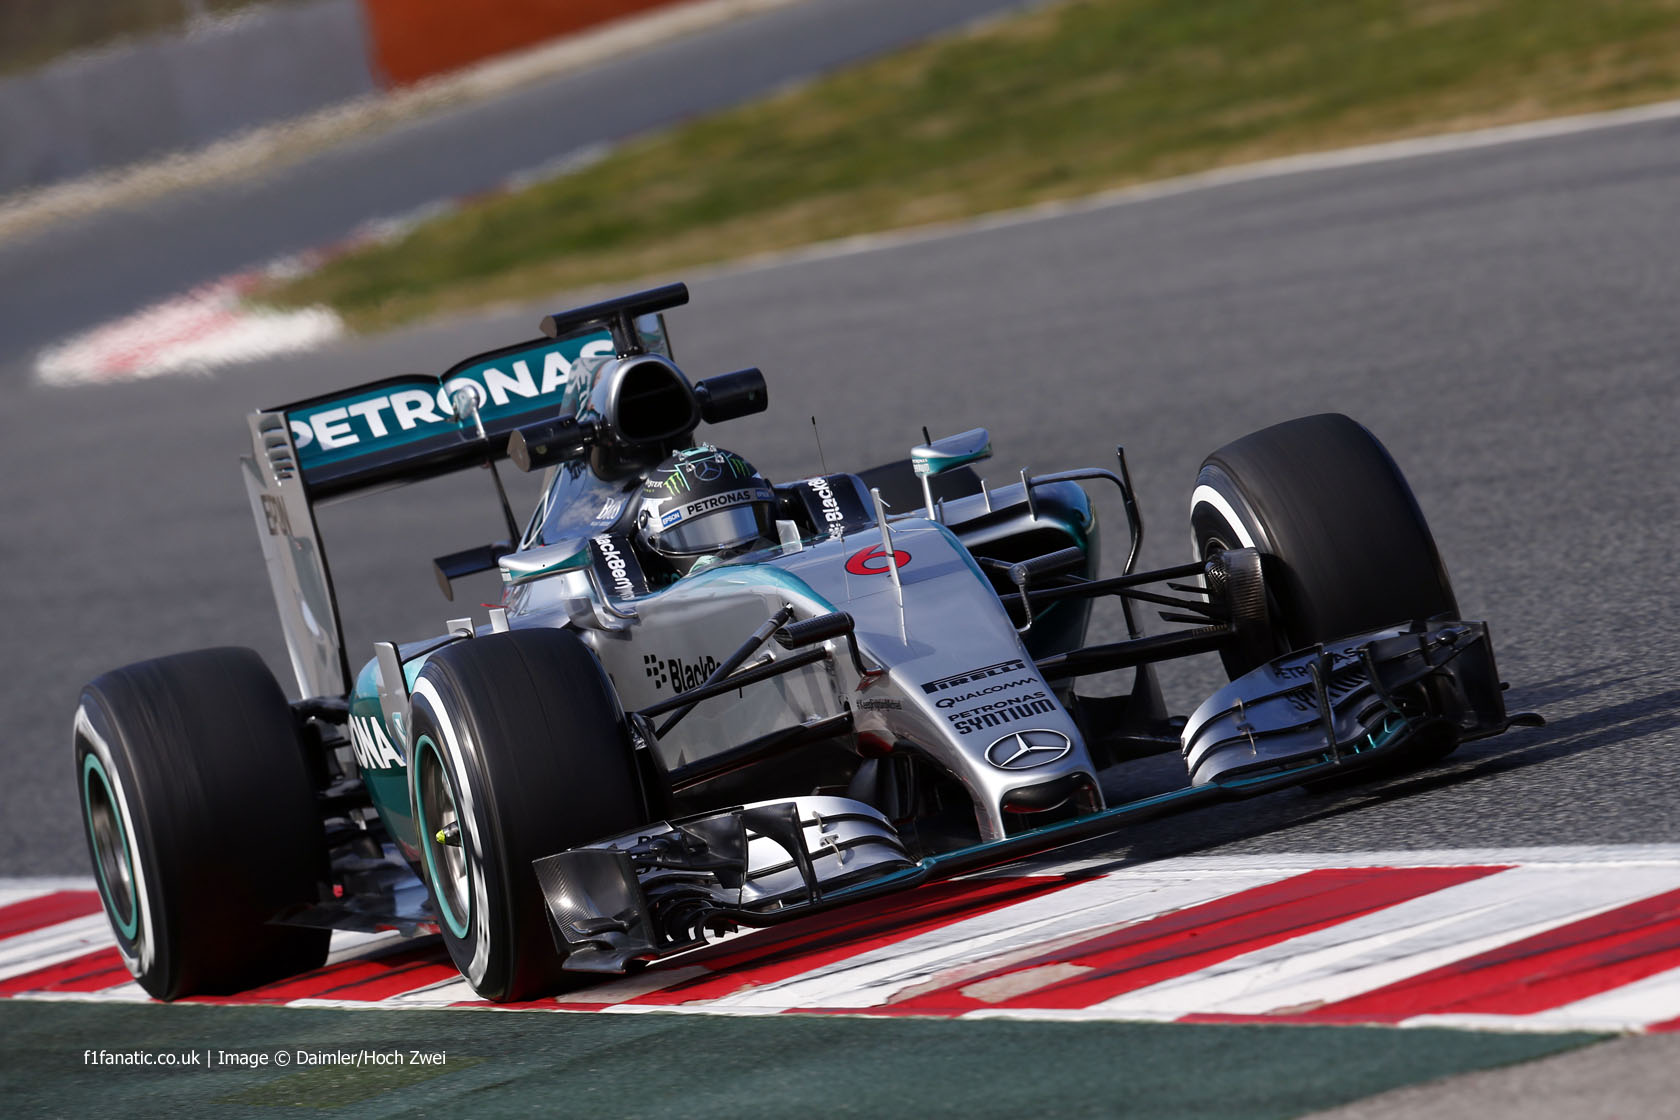 F1 Spanish Grand Prix Rosberg Commands And Conquers Gp Starting Lights From His First Pole Position Of The Season Made No Mistake To Take Lead Opening Bends But Hamilton Would Get